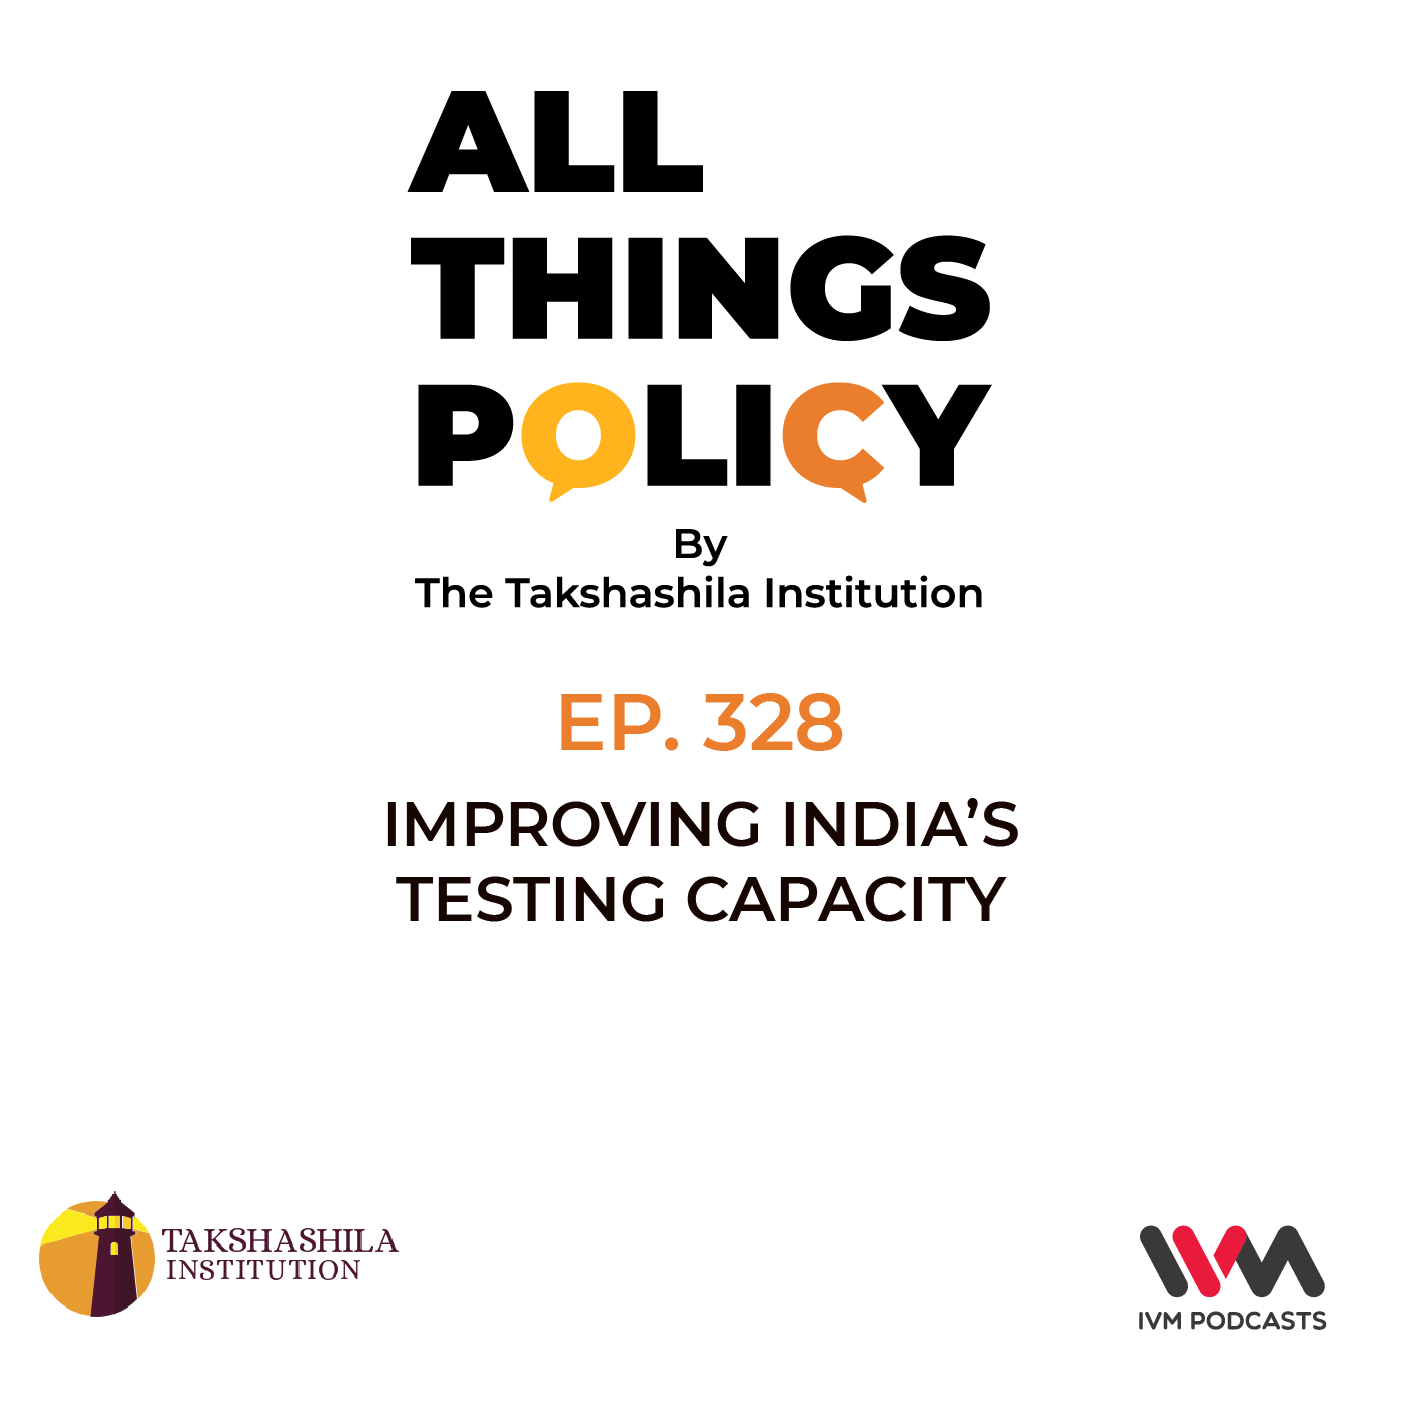 Ep. 328: Improving India's Testing Capacity